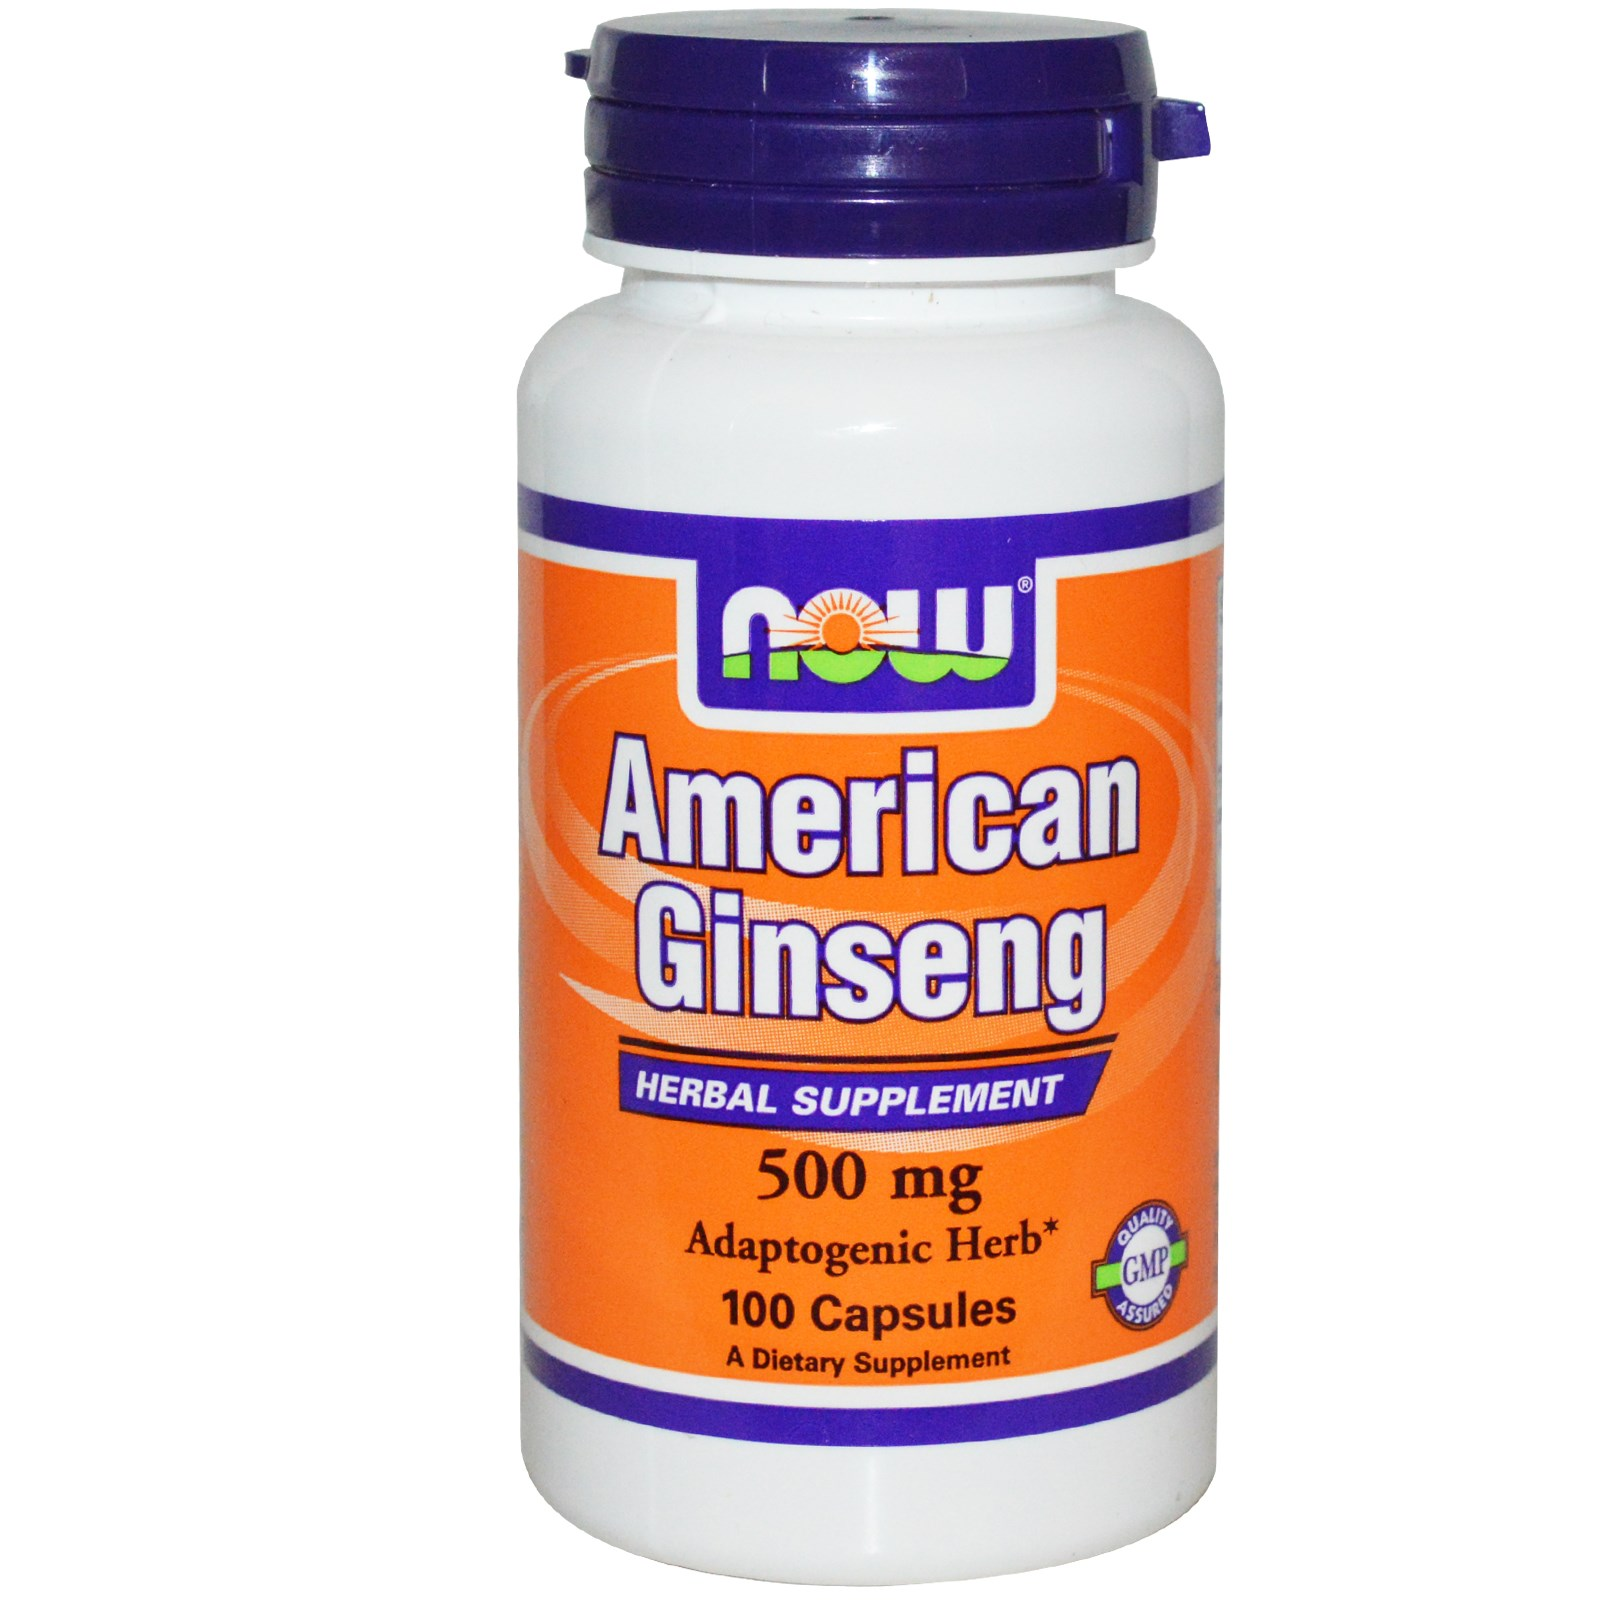 NOW American Ginseng